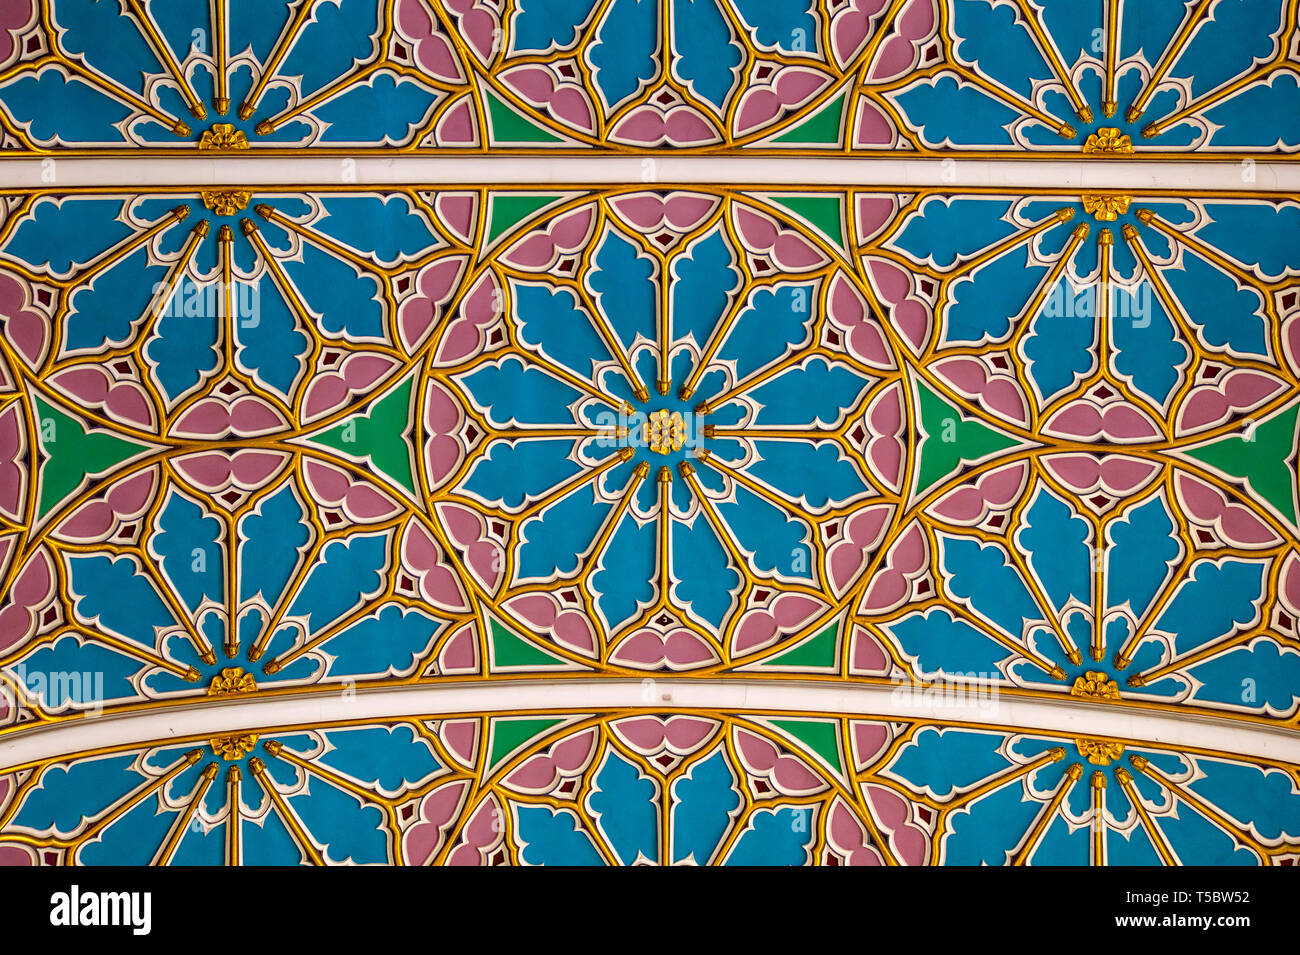 Patterned nave ceiling of Chelmsford Cathedral, Chelmsford, Essex, England, UK - Stock Image